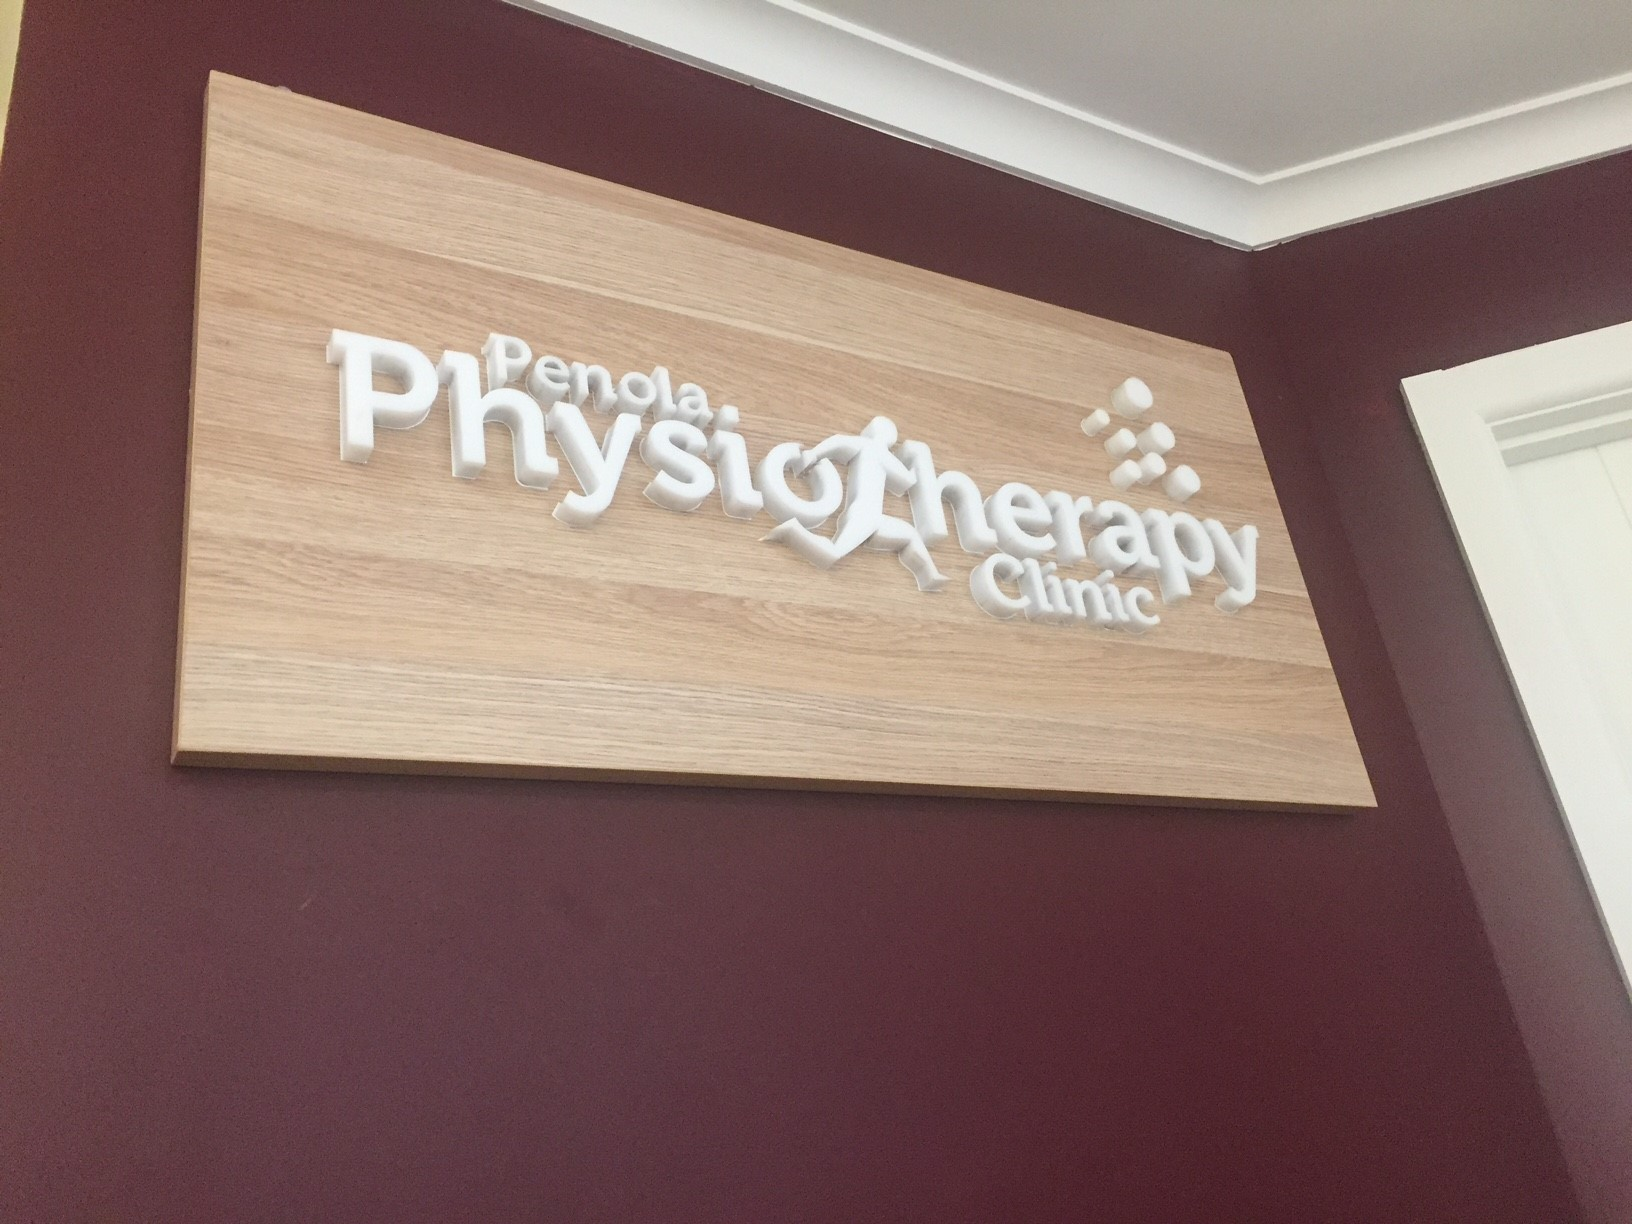 Penola Physiotherapy Clinic Router Cut Acrylic Reception Sign